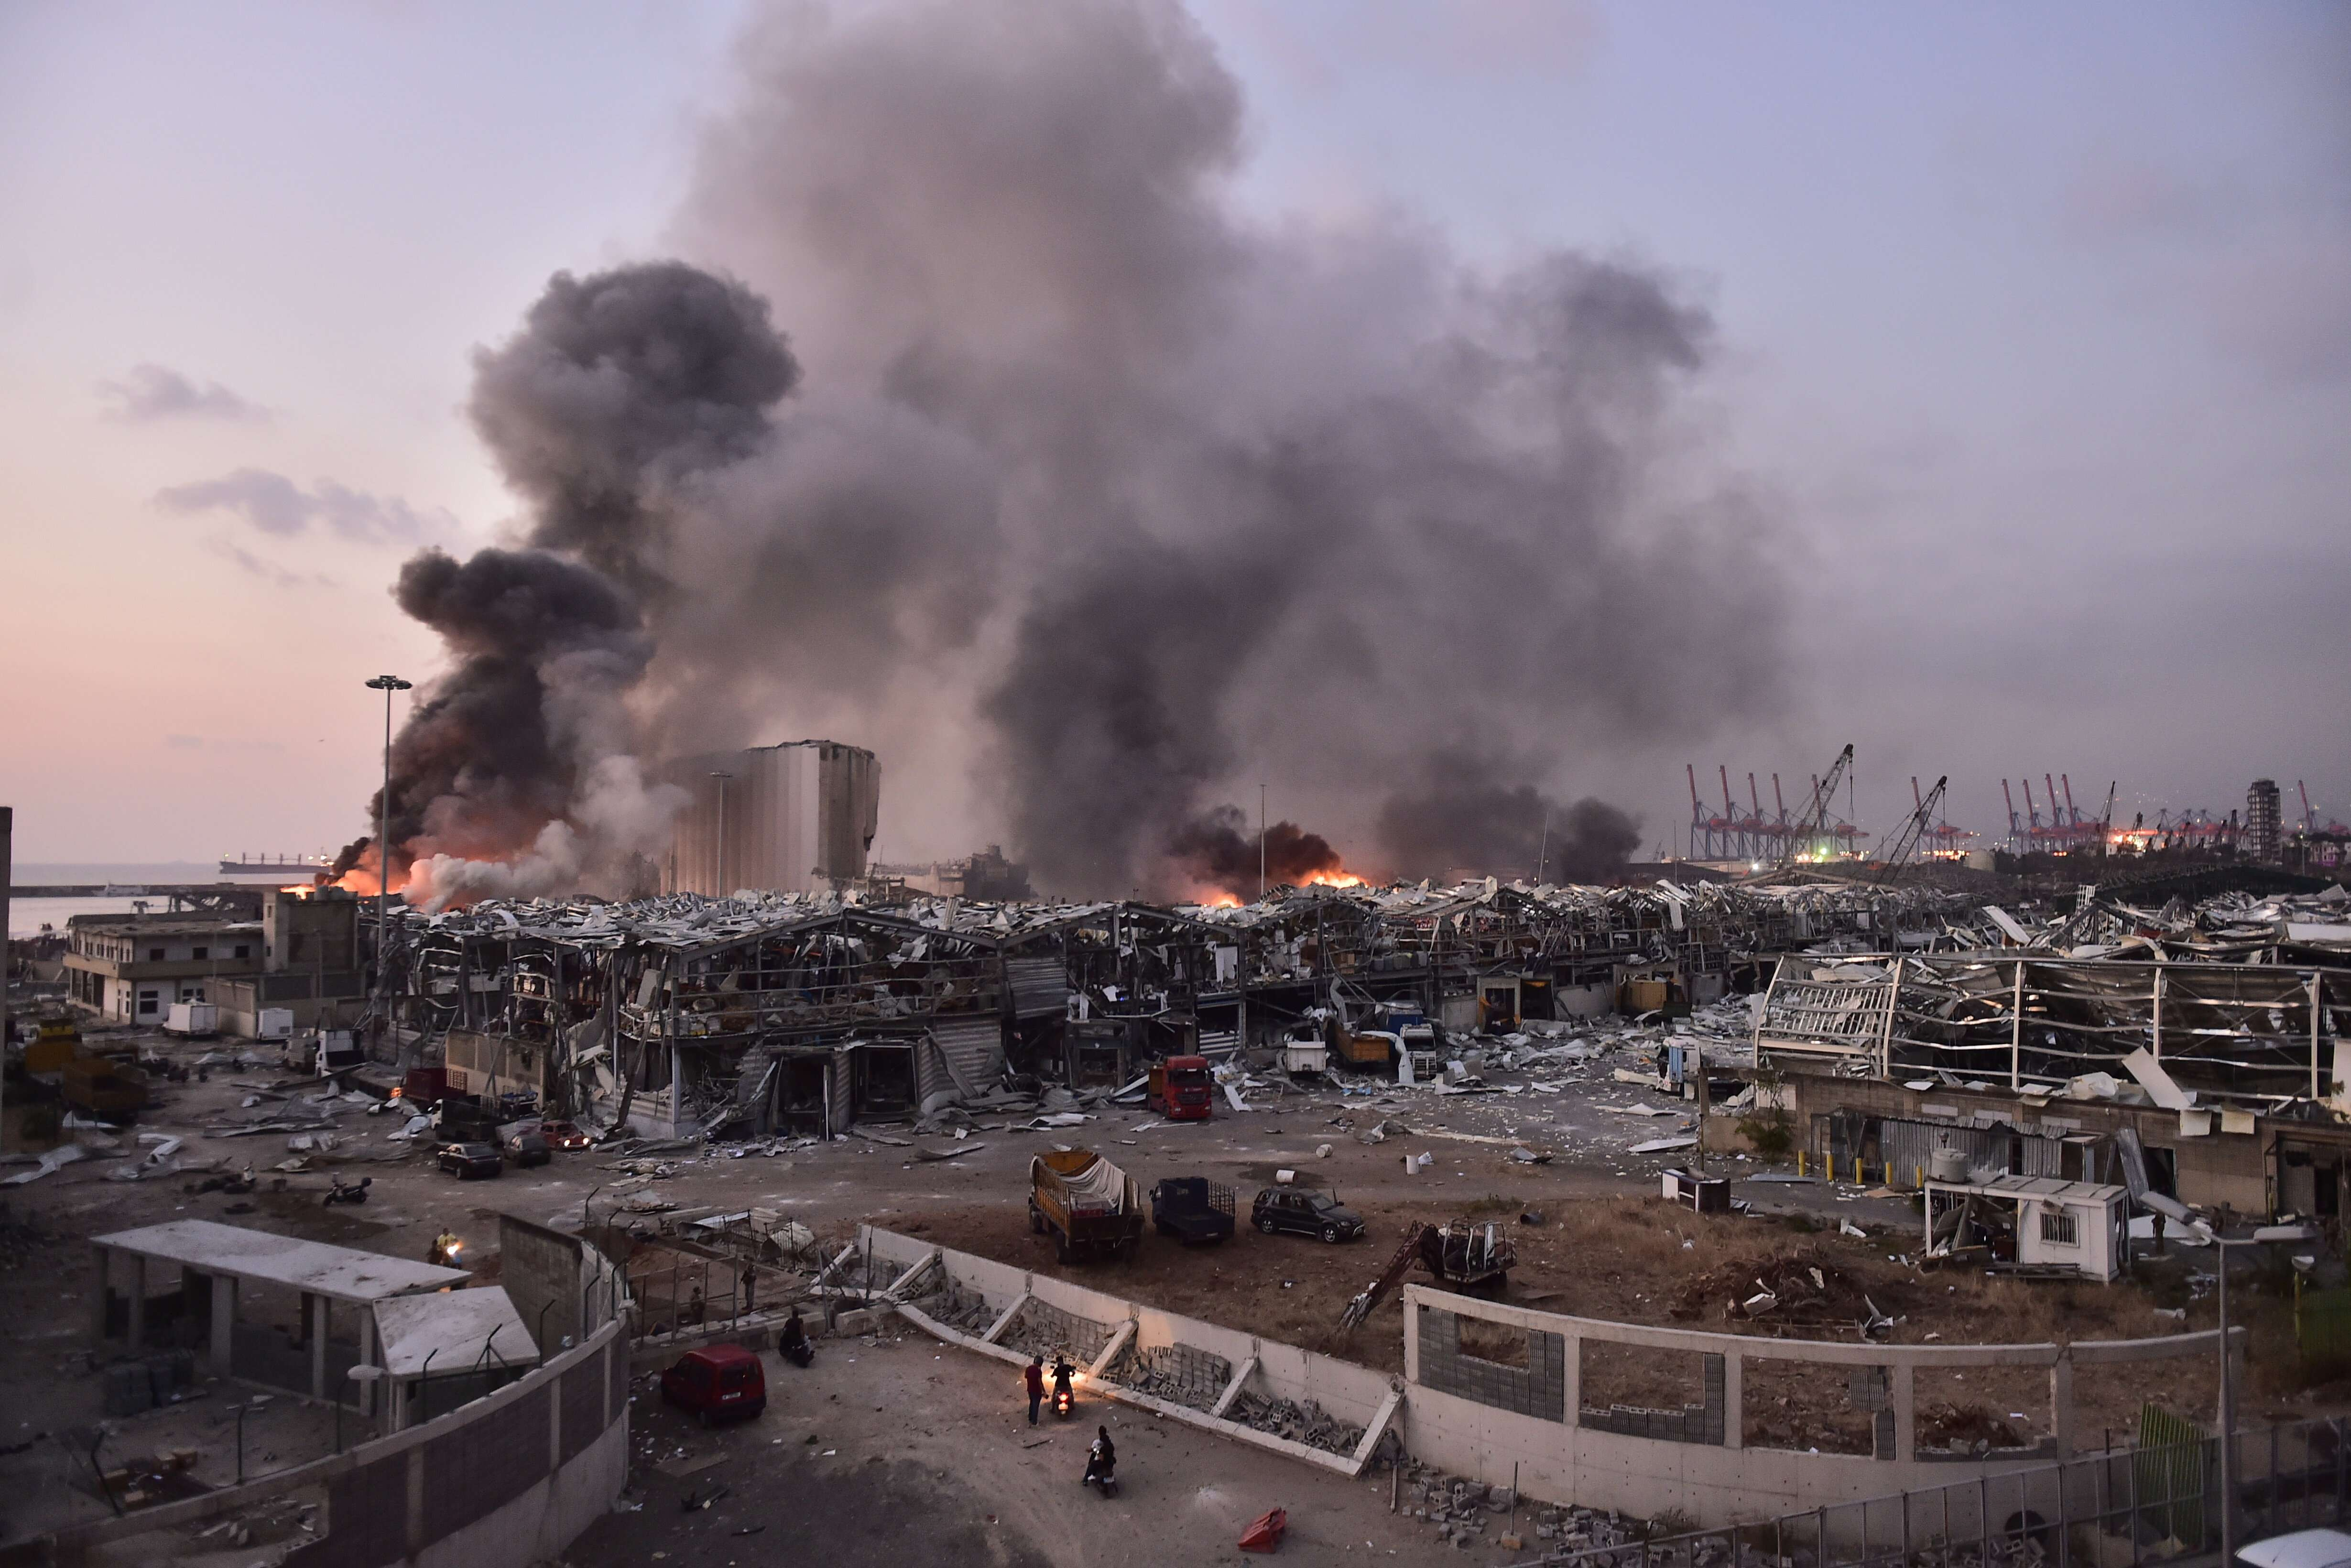 Lebanon: Attempts of obstructing justice for Beirut port explosion victims continue